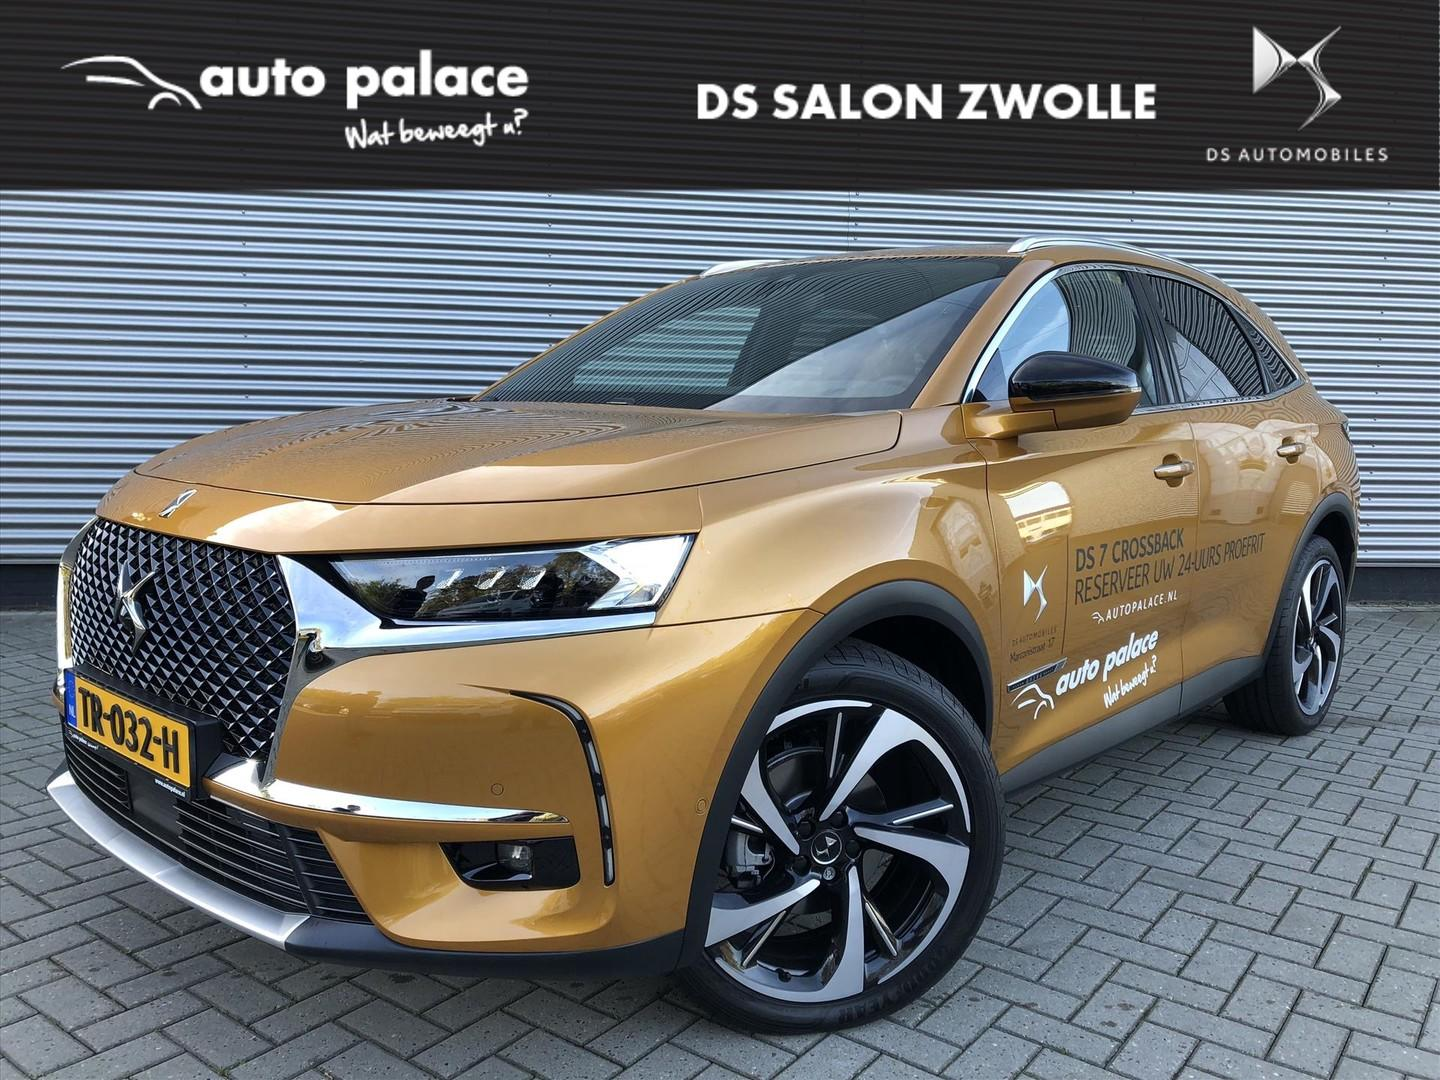 Ds Ds 7 crossback 2.0 bluehdi 180pk automaat be chic